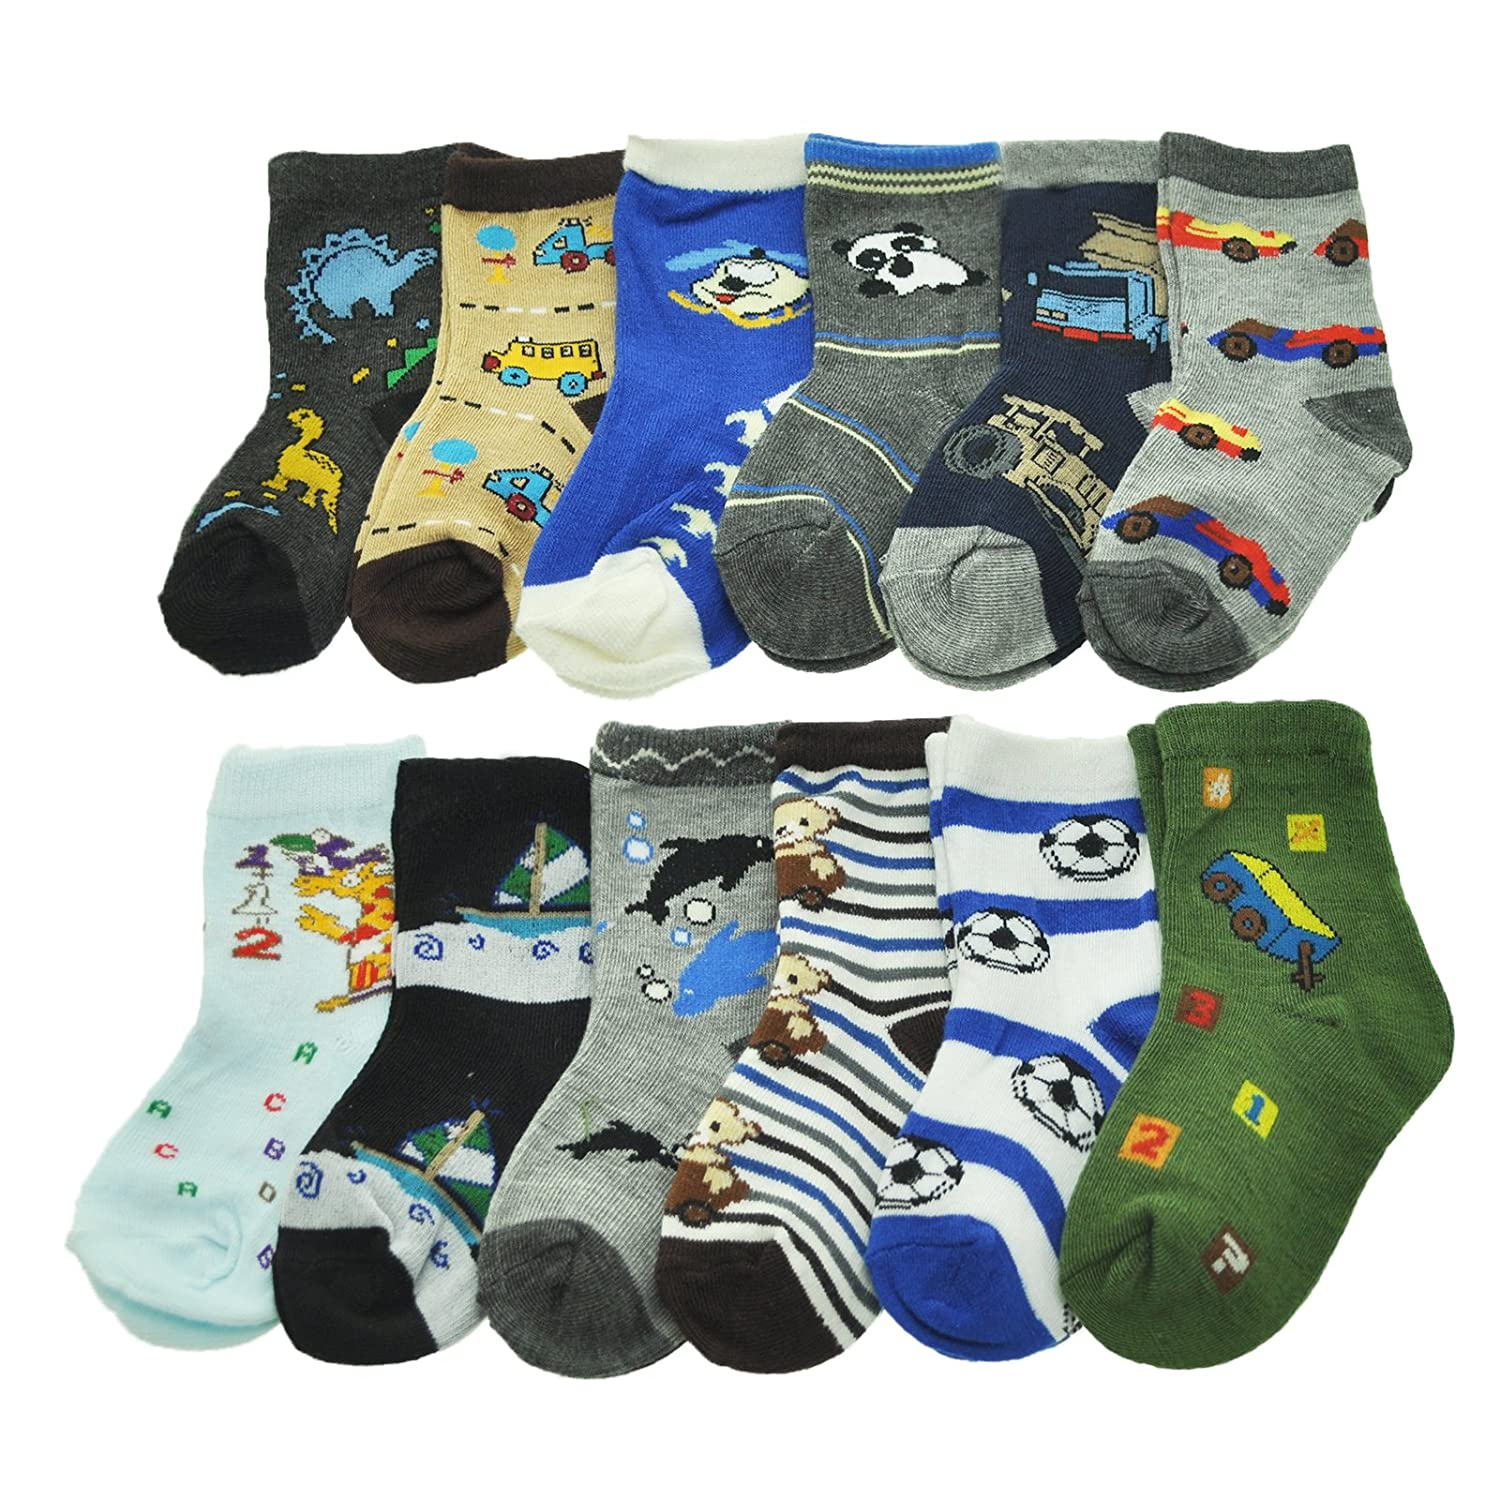 Angelina Boys Kids 12-Pack Assorted Designs Crew Socks